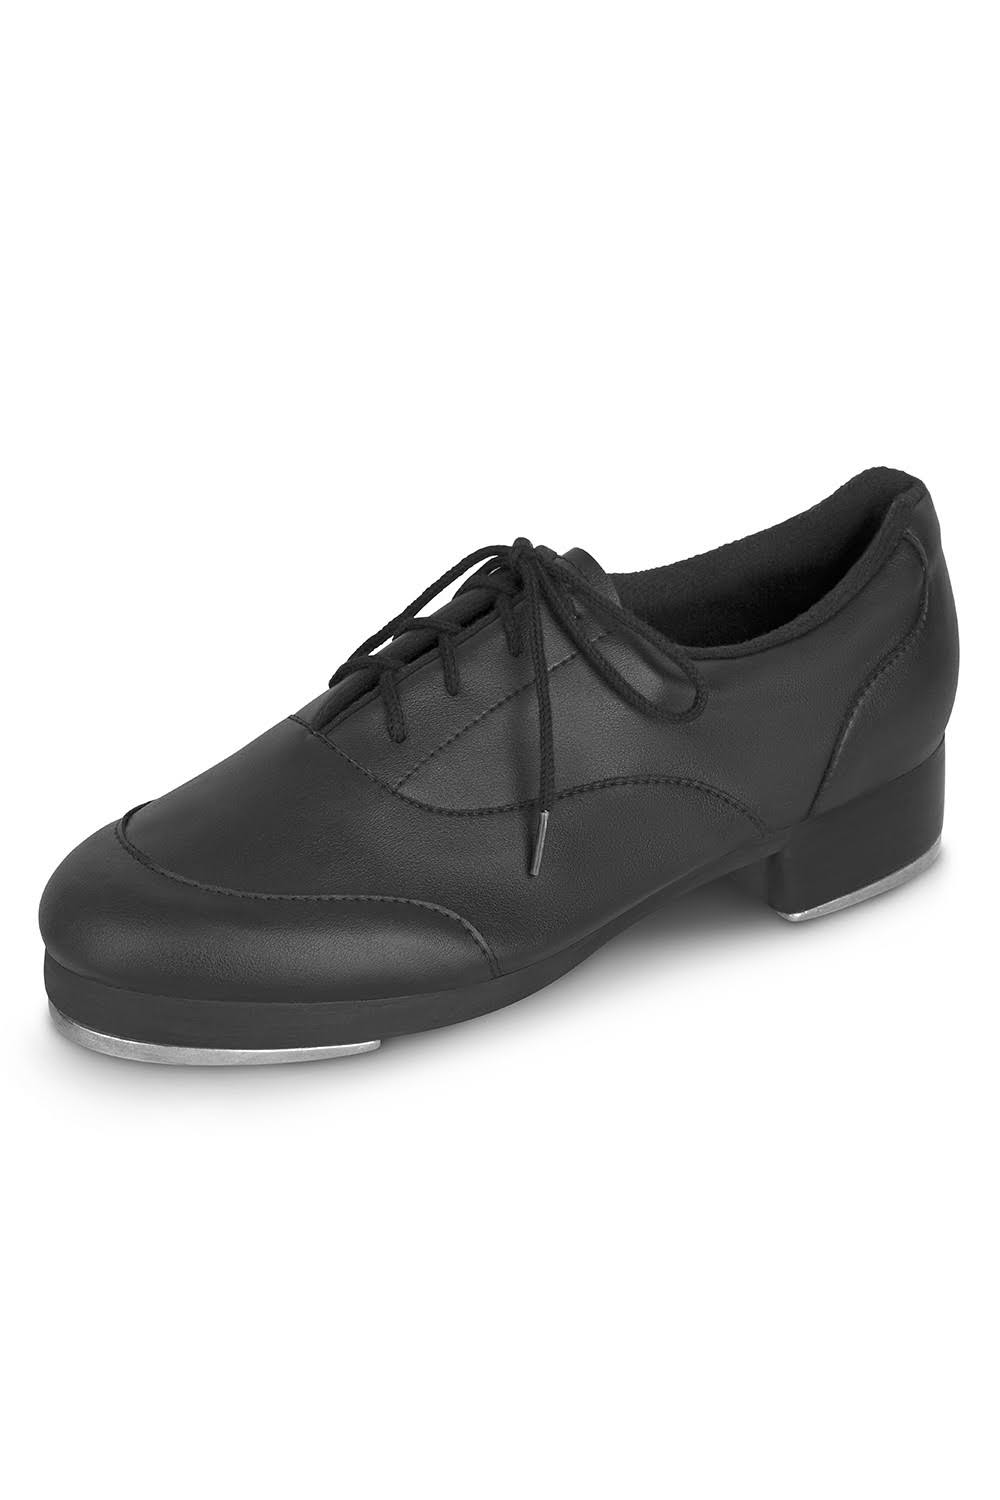 Leo Women's Ultra Tap Dance Shoe